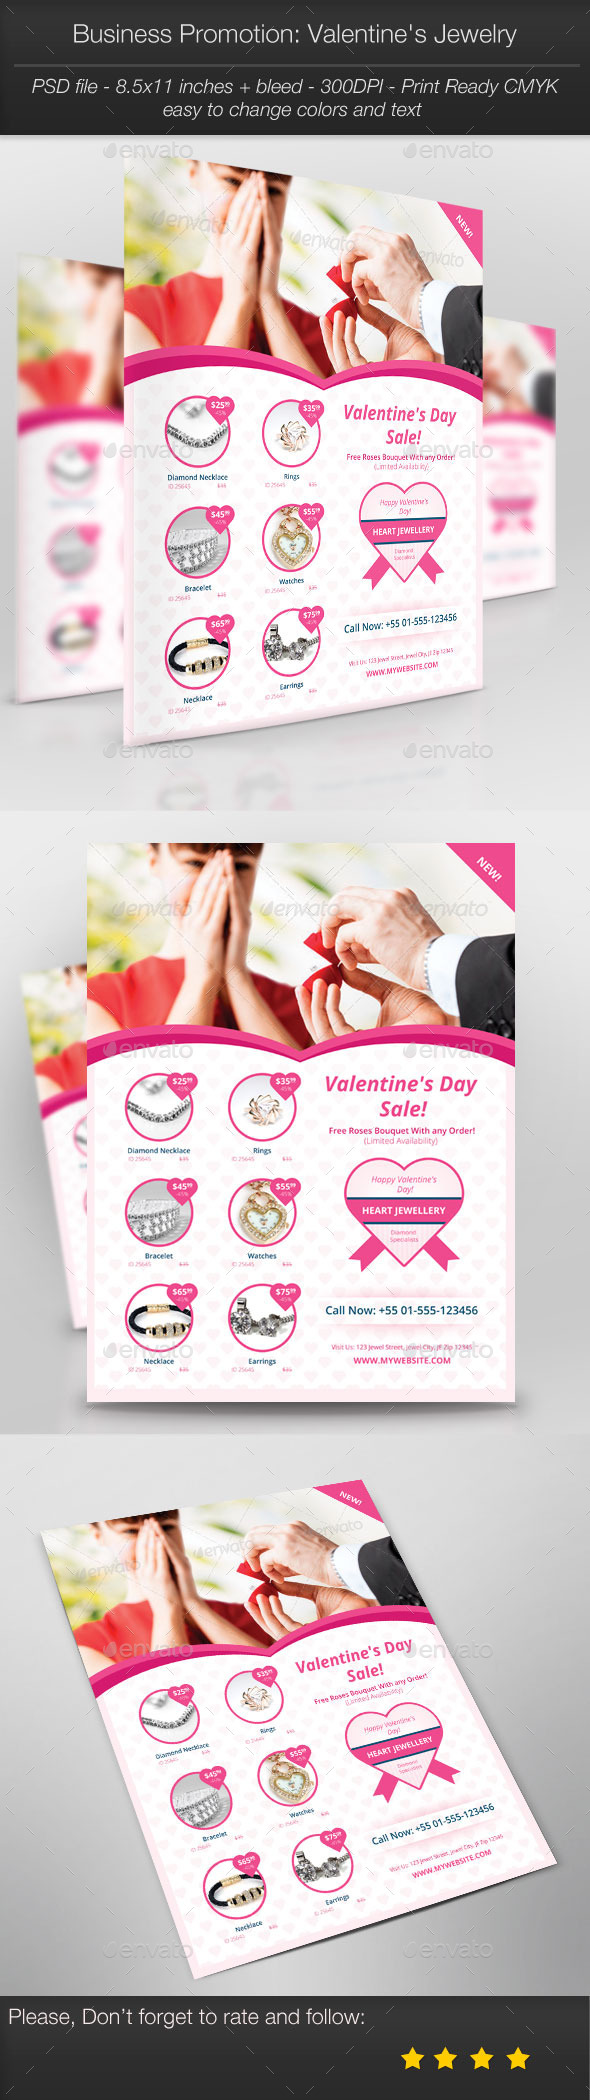 Business Promotion Valentine s Jewelry